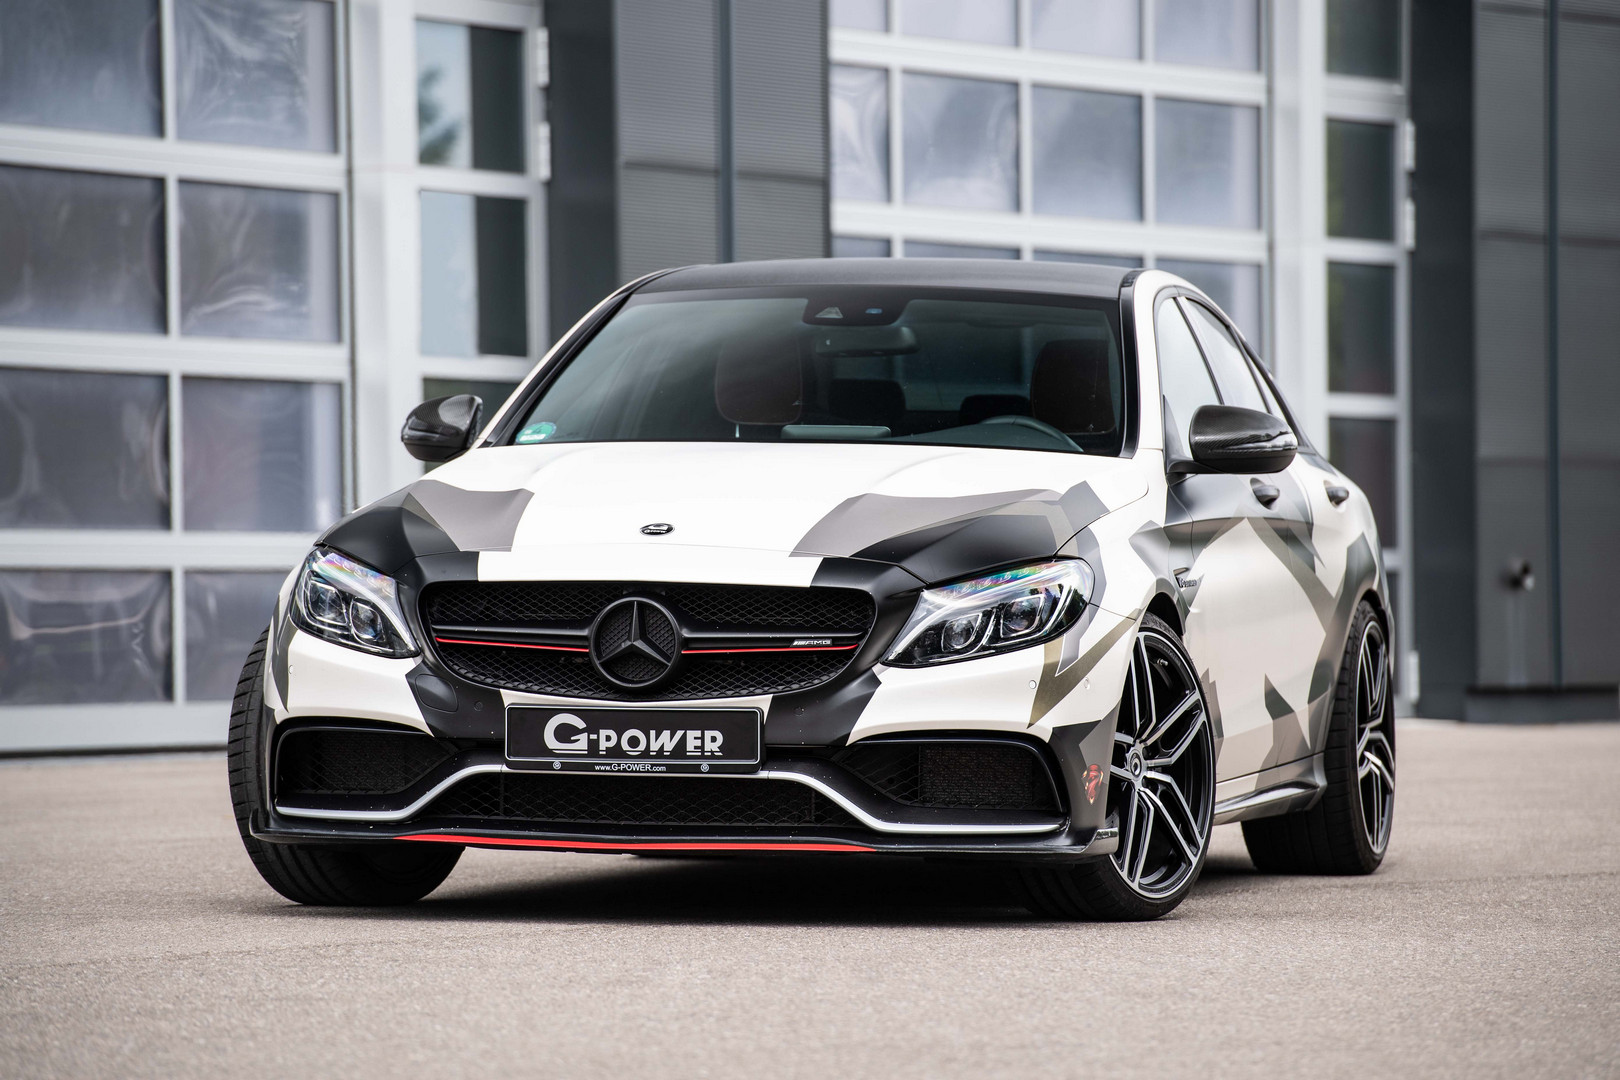 G-Power Mercedes-AMG C63 Sedan